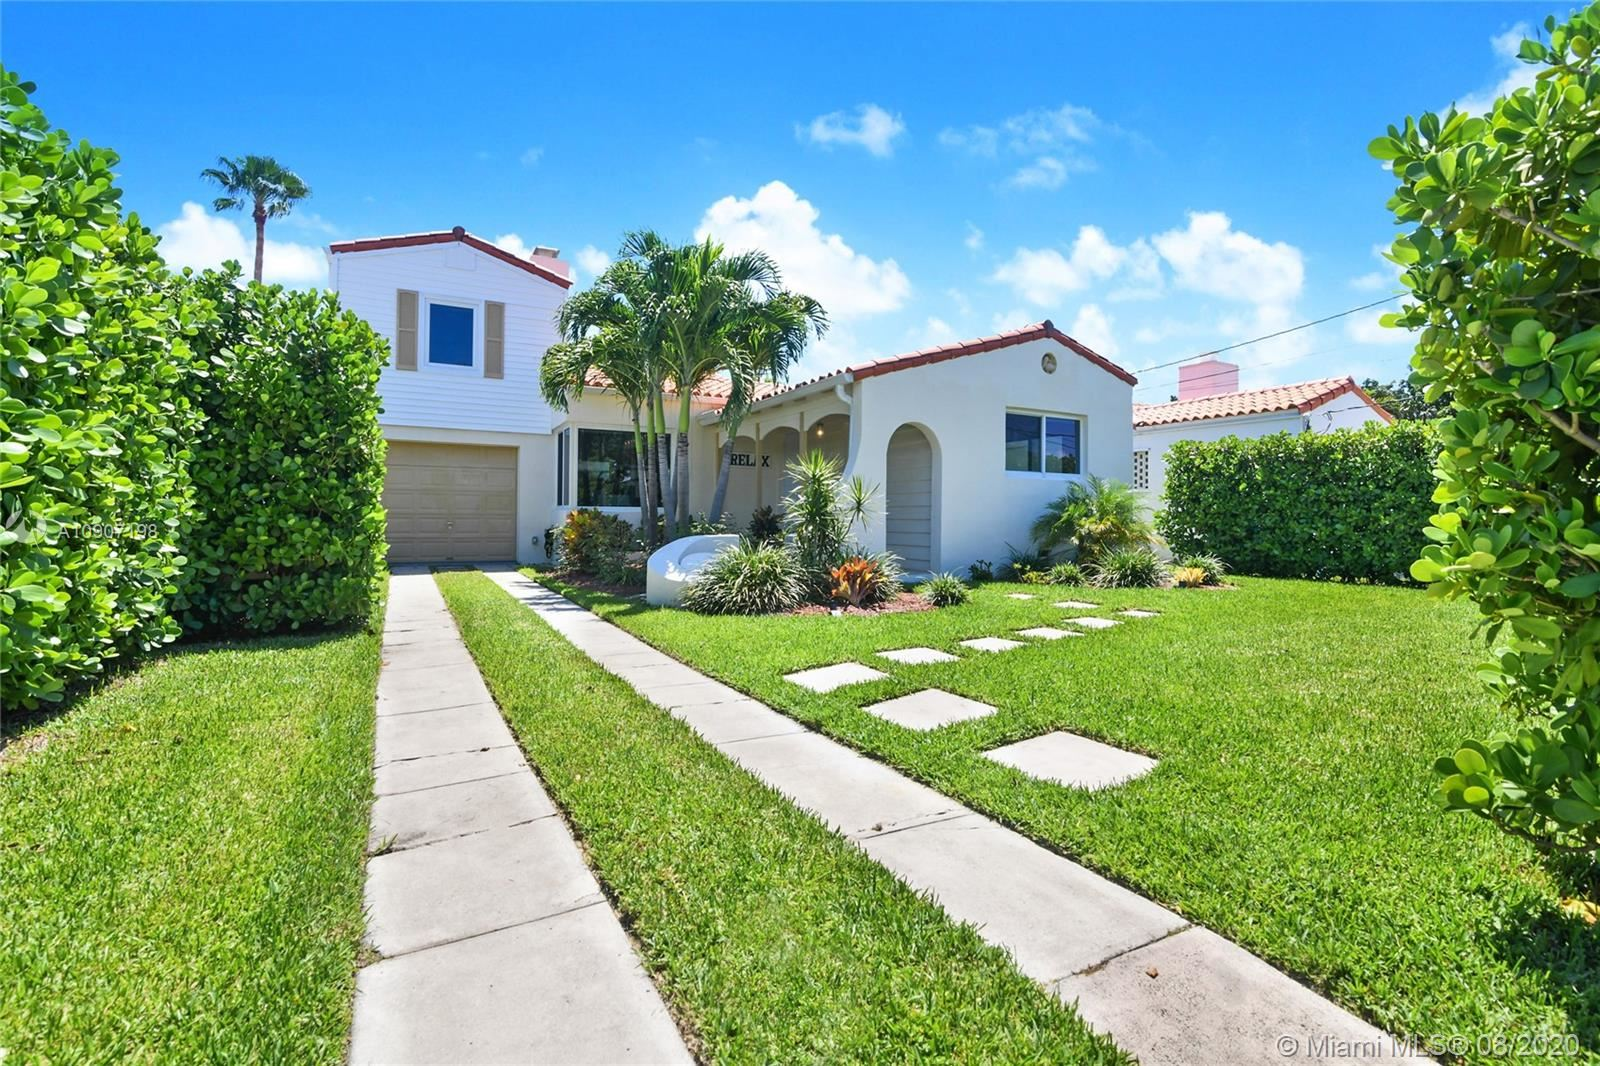 8827 Carlyle Ave, Surfside, FL 33154 - #: A10907198